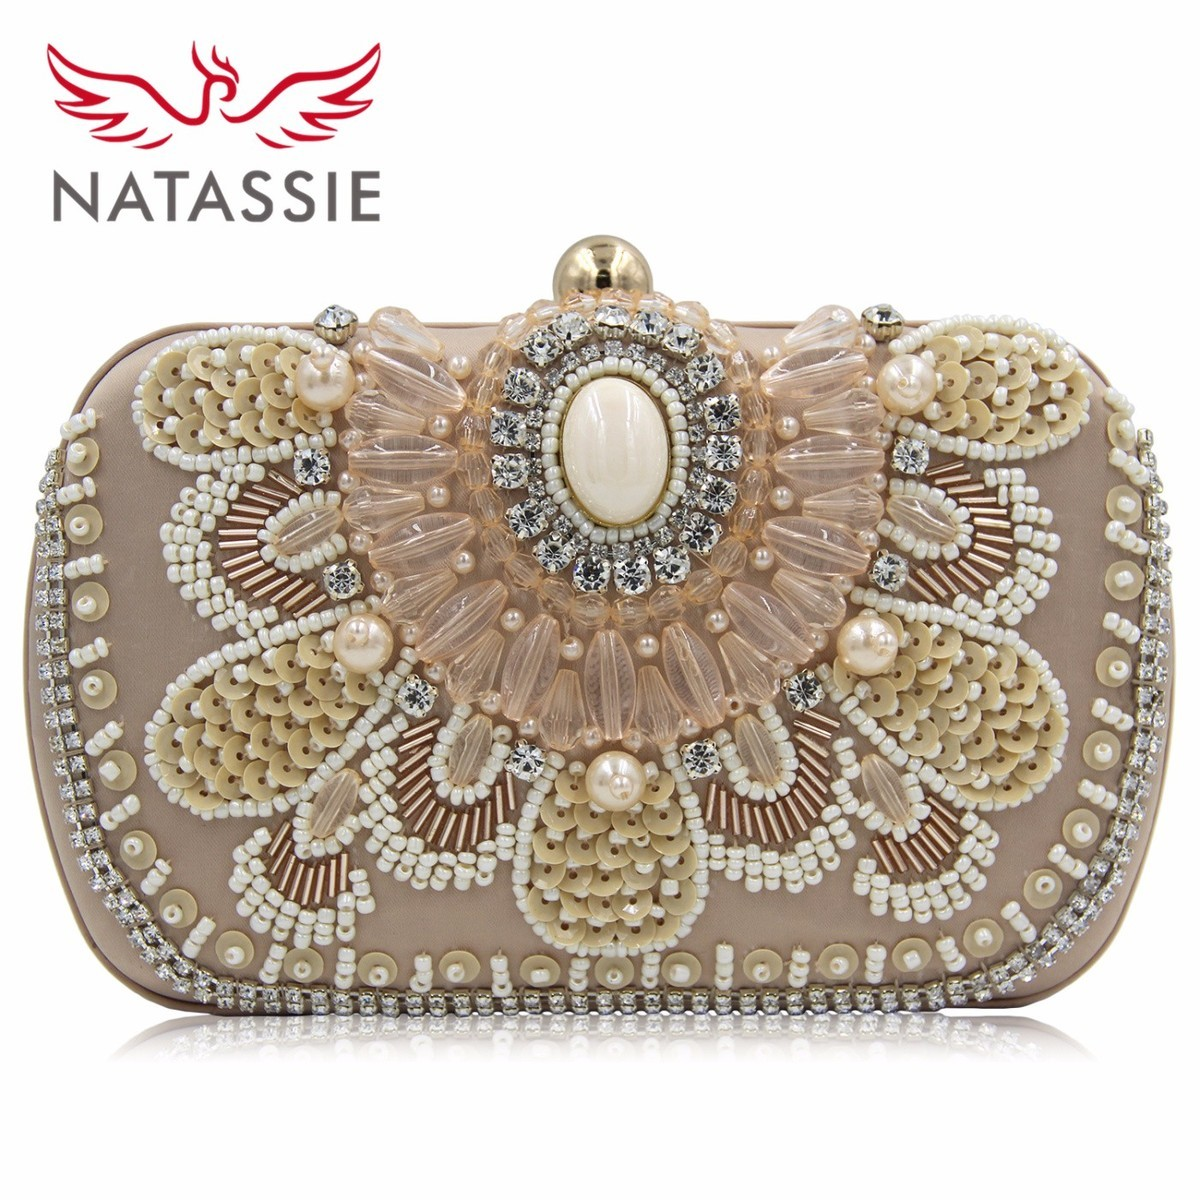 NATASSIE Brand 2017 New Women Pearl Evening Bags Wholesale Designer White  Wedding Party Beaded Box Clutch